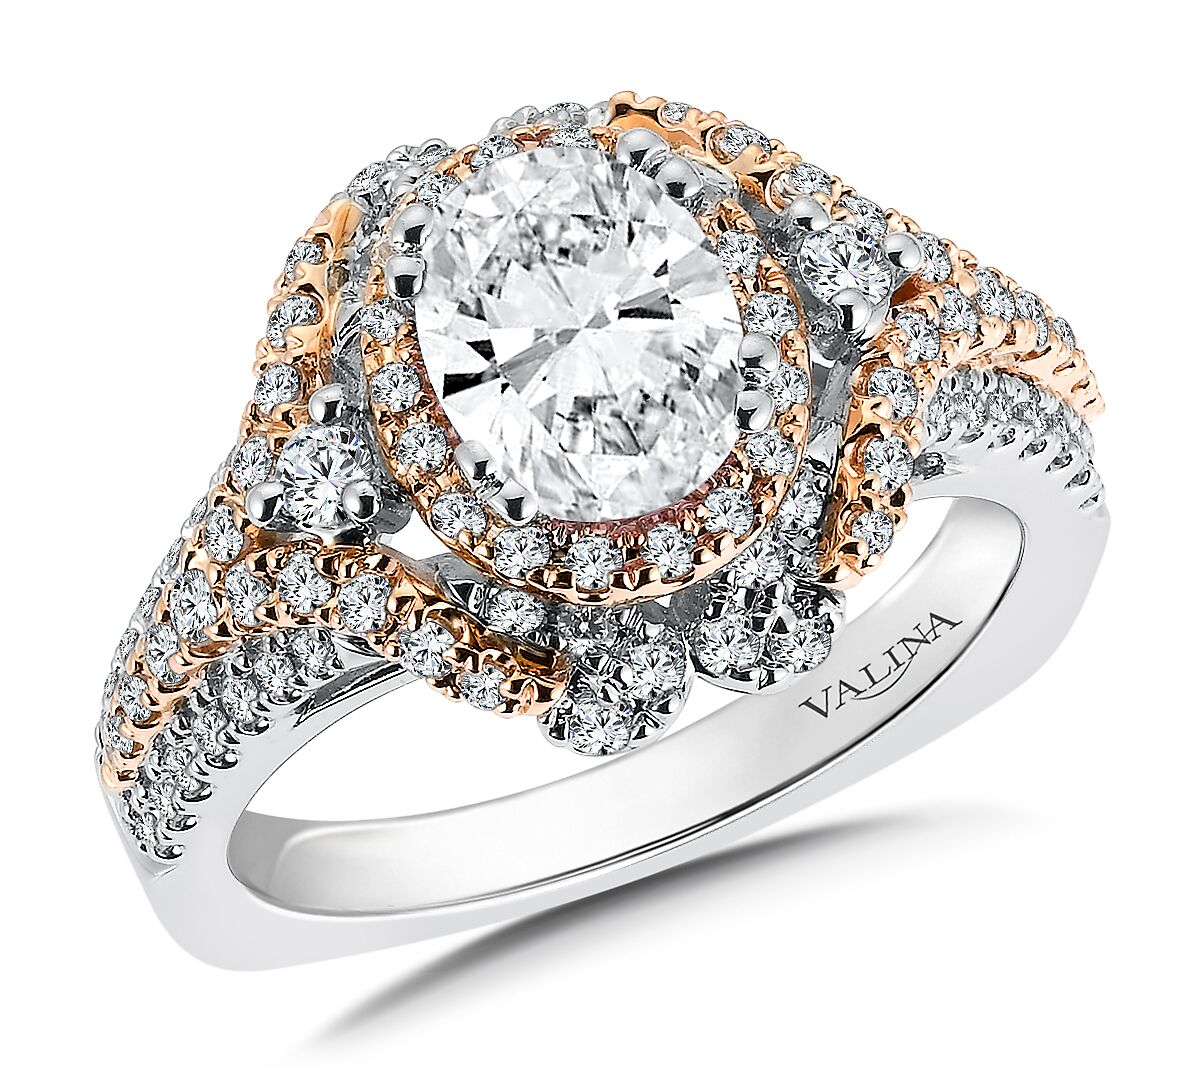 custom engagement rings in dallas texas - best diamond rings in dallas - best diamond prices - oval diamonds - 2 carat diamonds - dallas texas